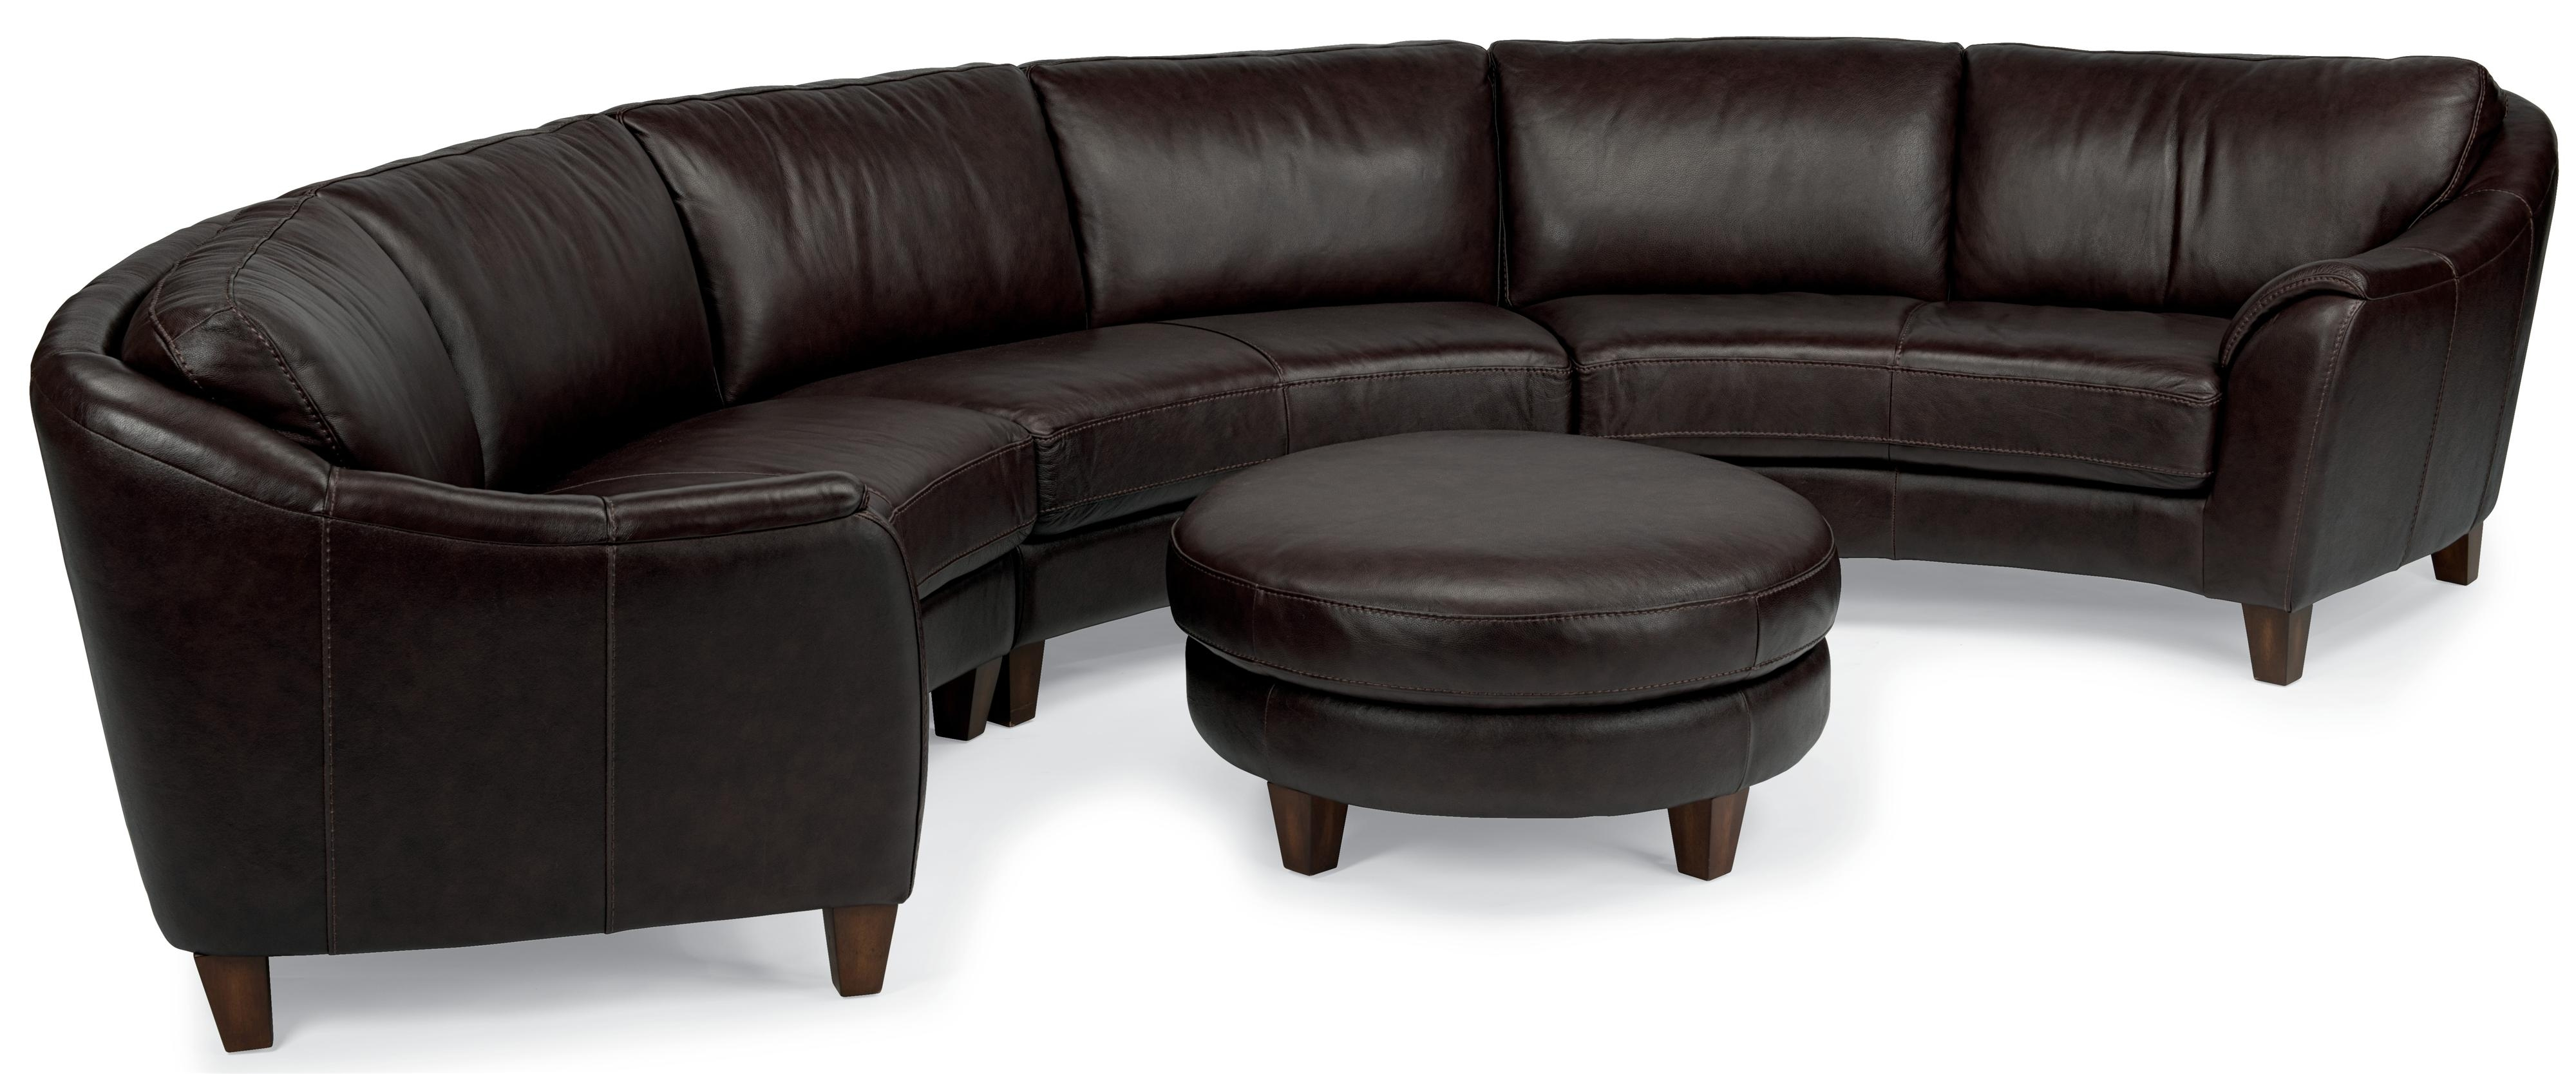 Flexsteel Latitudes Lidia Contemporary Three Piece Conversation Pertaining To Conversation Sofa Sectional (View 3 of 15)